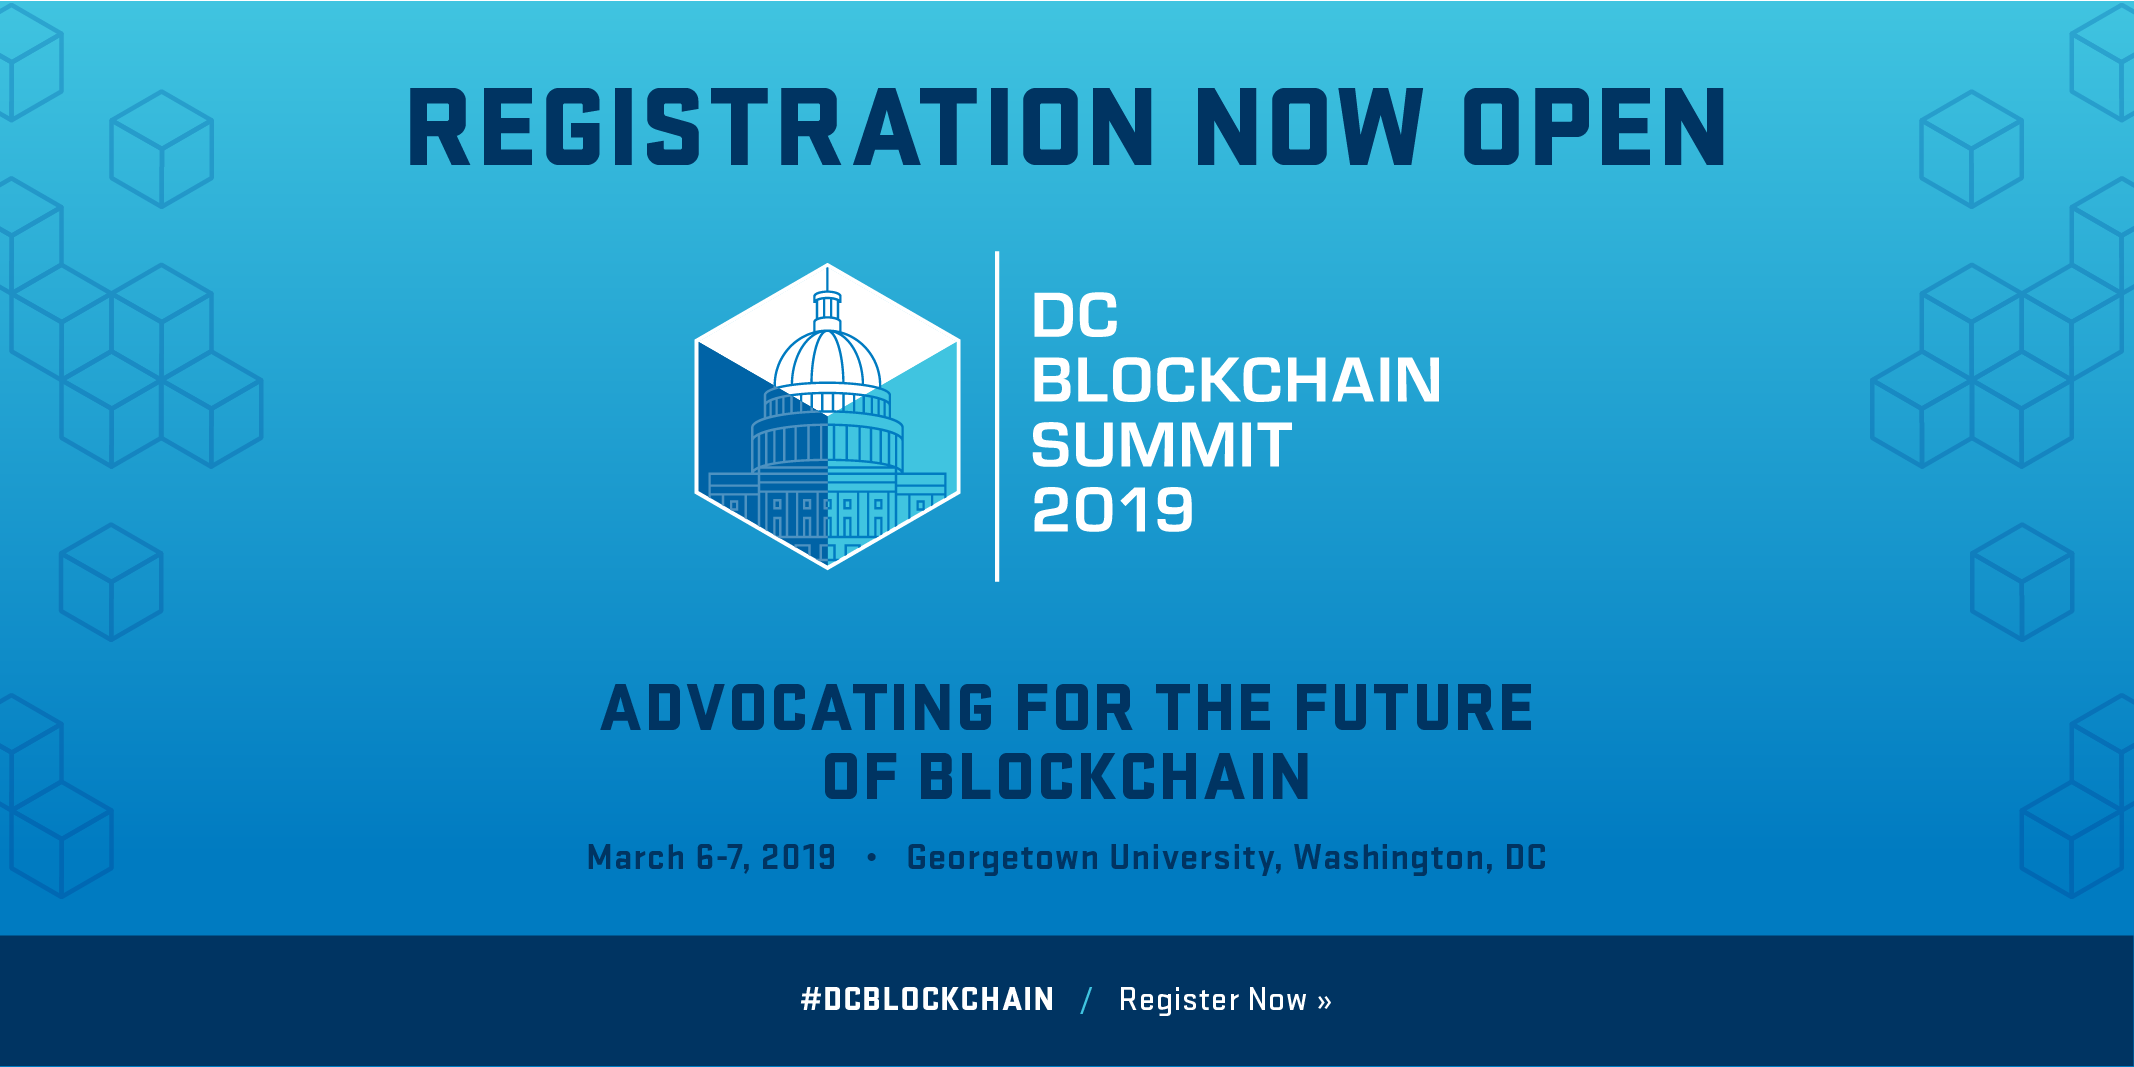 DC_Blockchain_Summit_The_Bridge_Digital_Chamber_of_Commerce .png